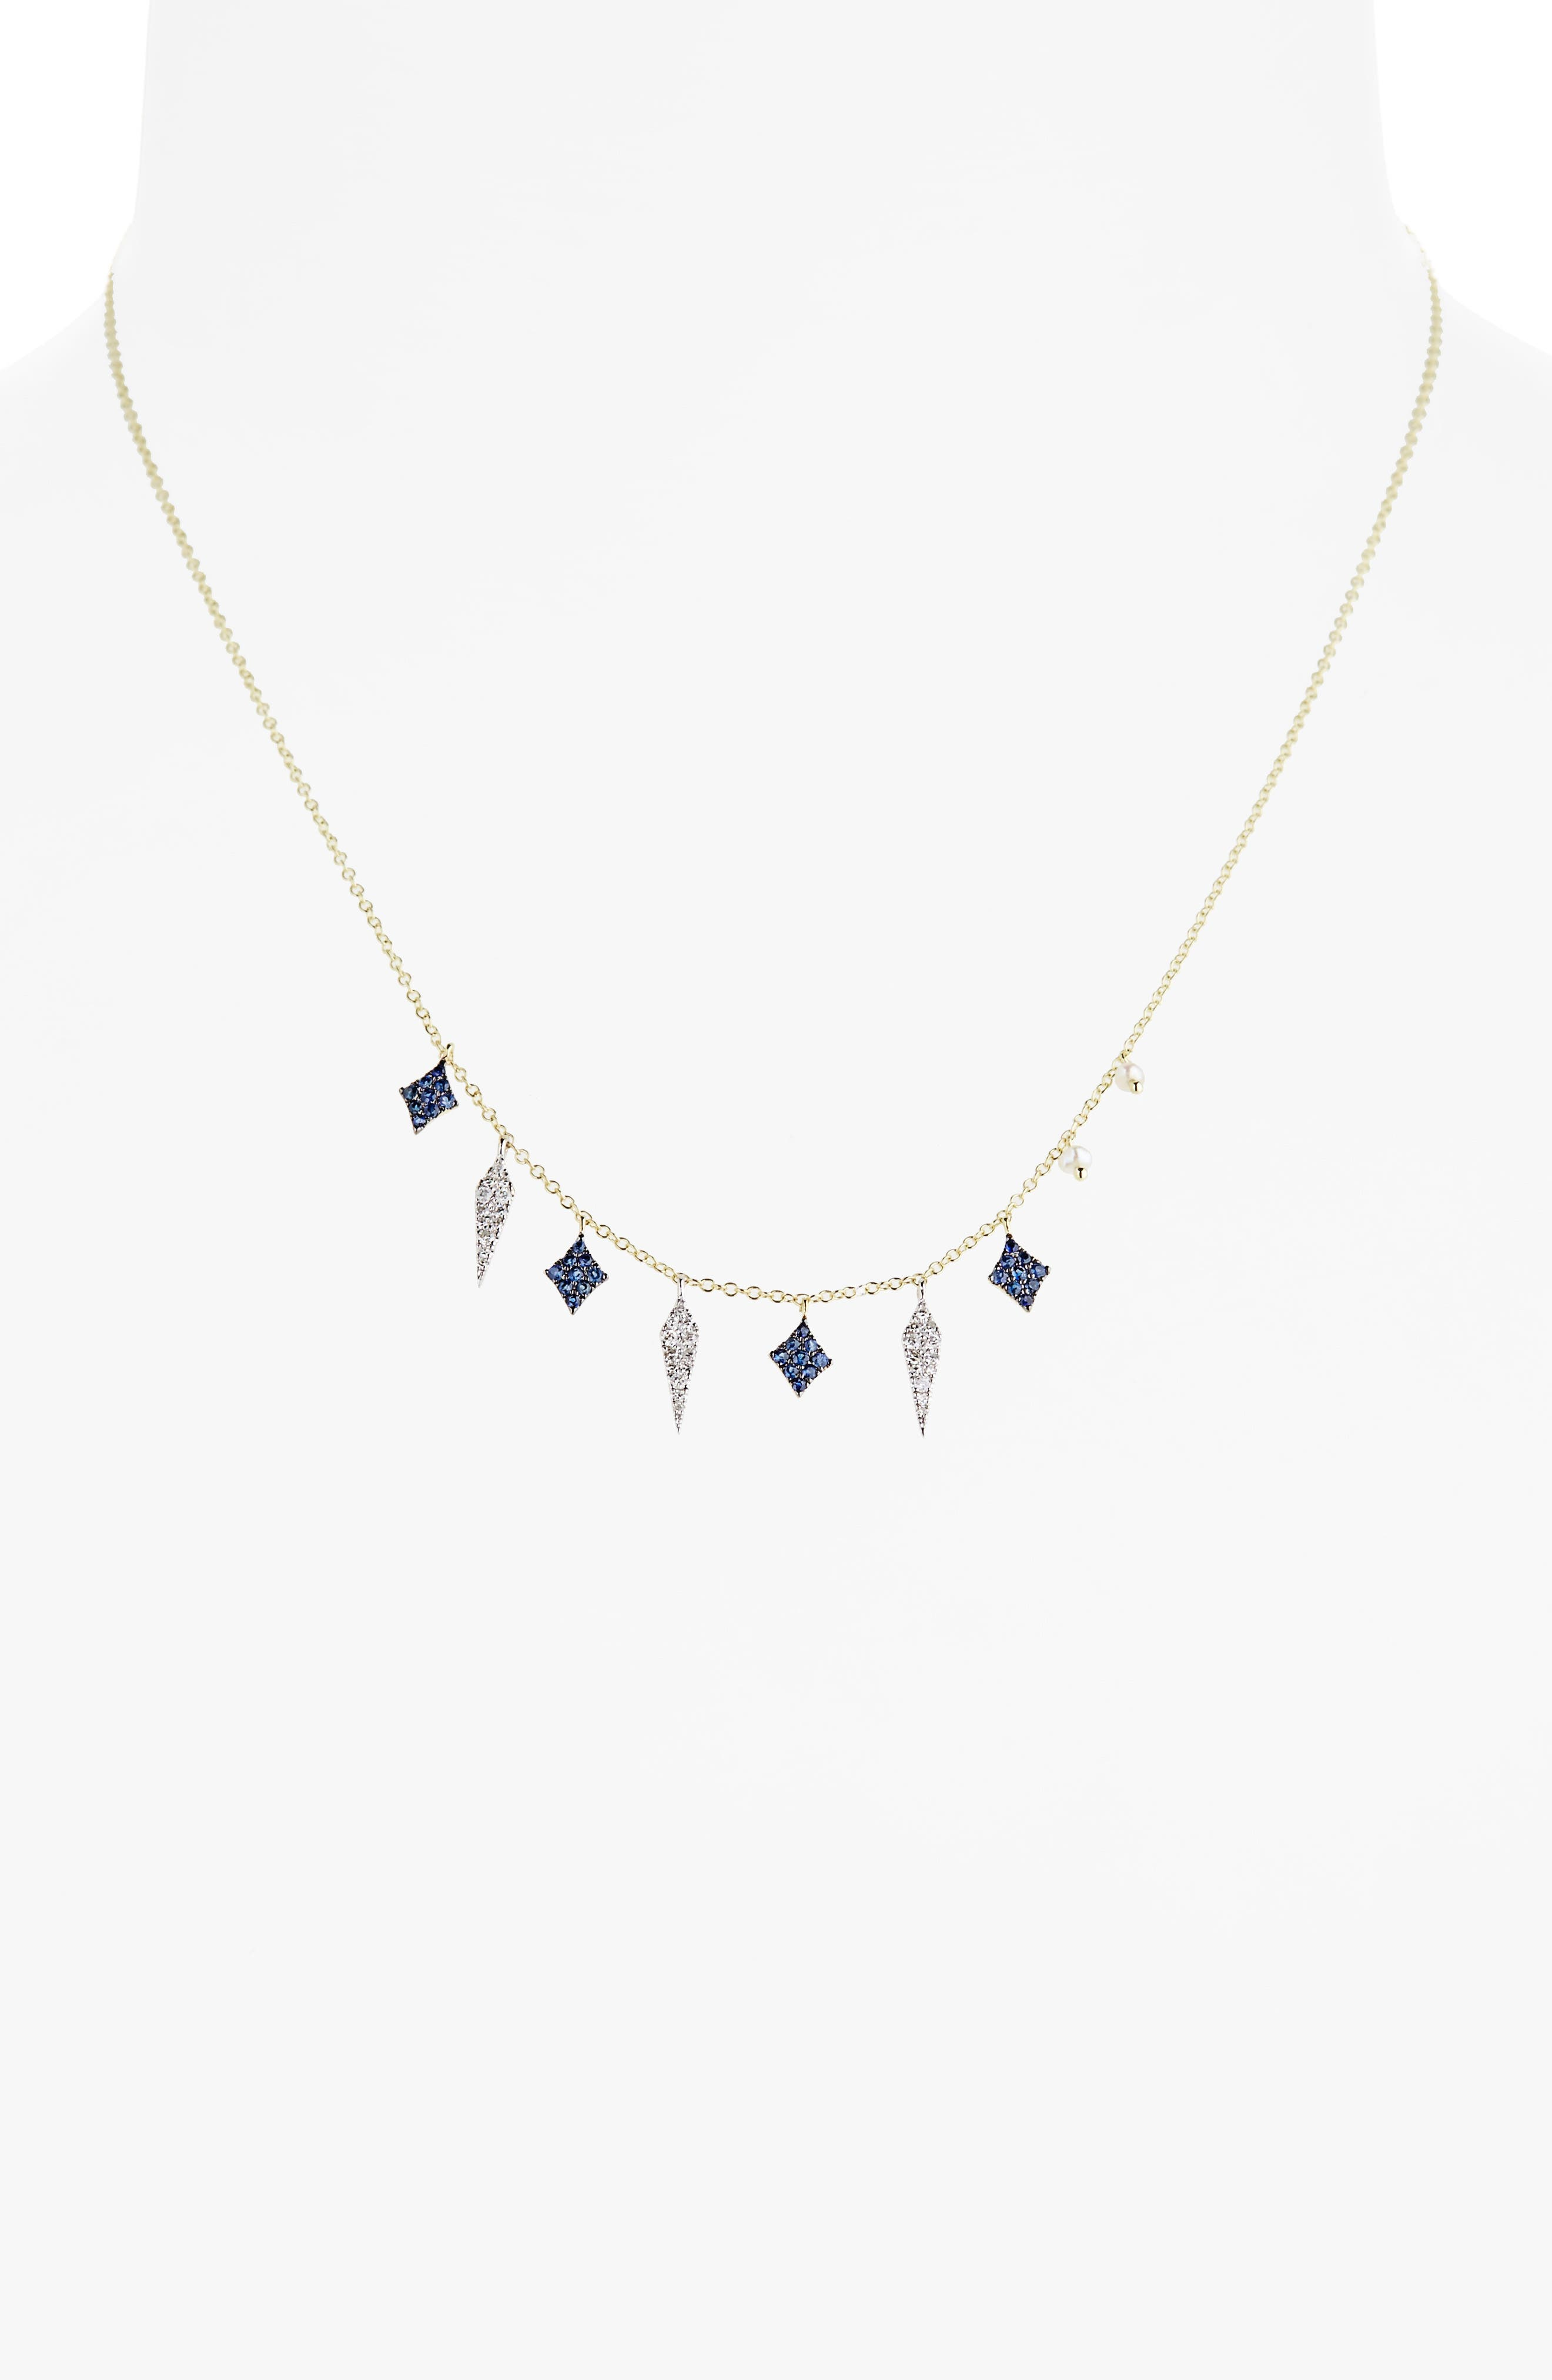 Alternate Image 1 Selected - Miera T Diamond & Sapphire Charm Necklace